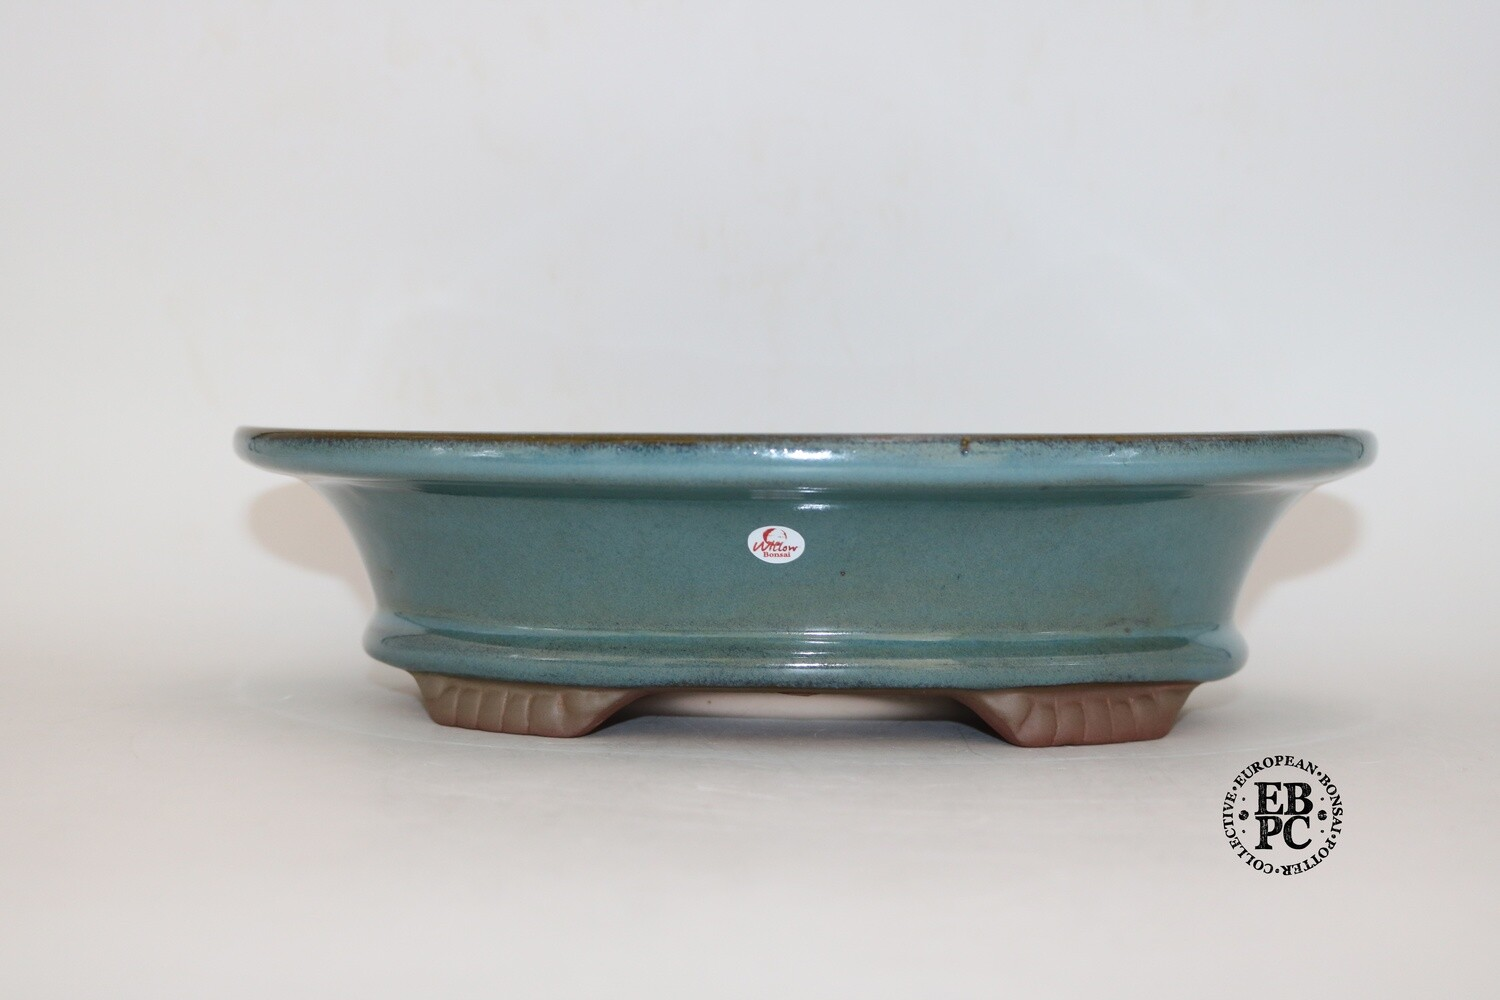 Willow Bonsai Pots, S.Africa -  Oval; Wide Lip Design; Teal Glaze; Greens, Browns, Blues; Scalloped Feet; EBPC stamped.